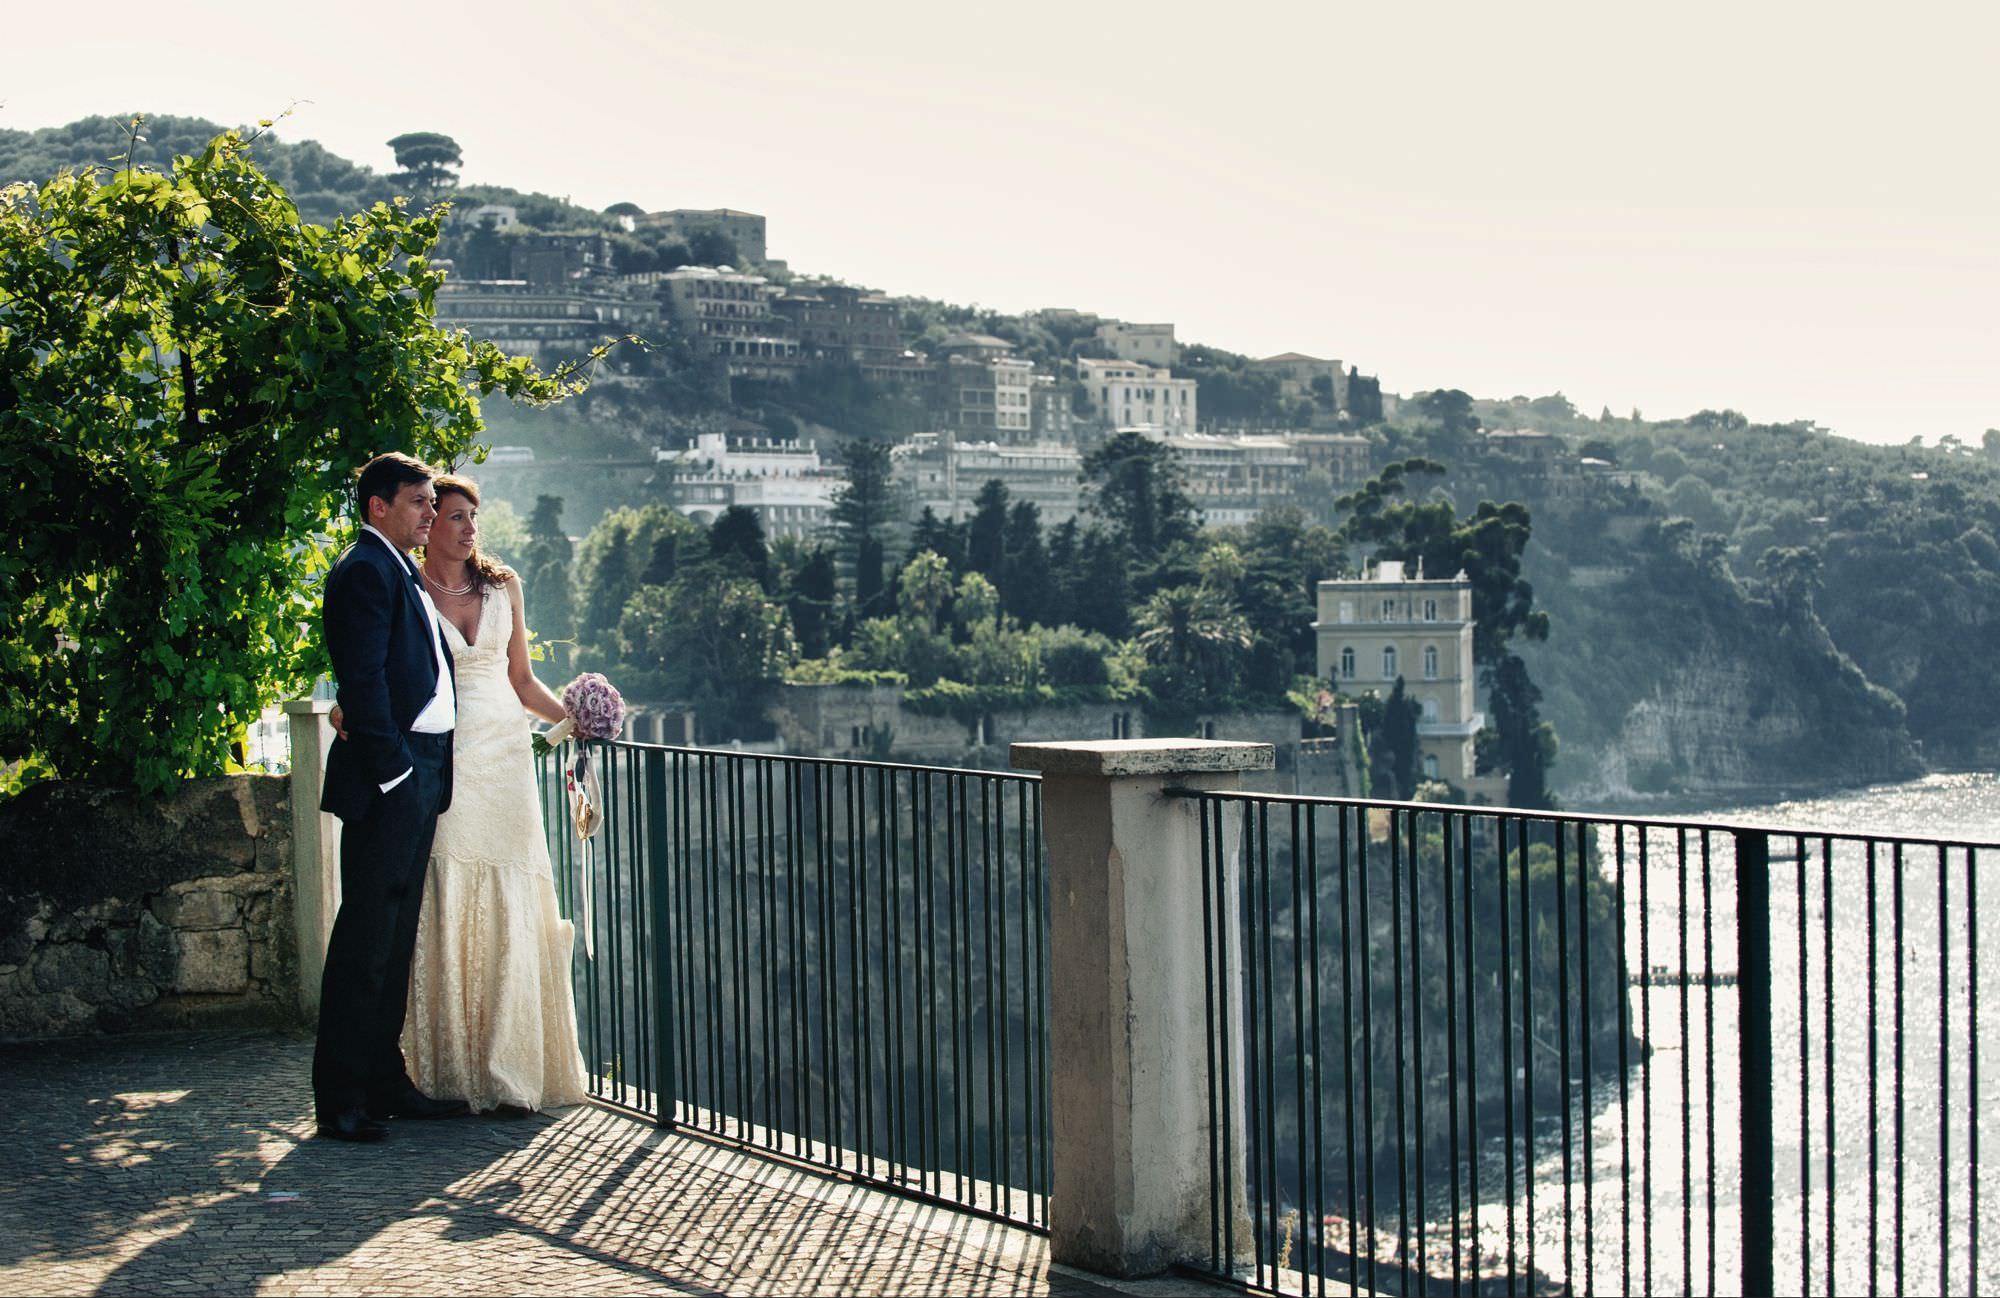 A Sorrento wedding review